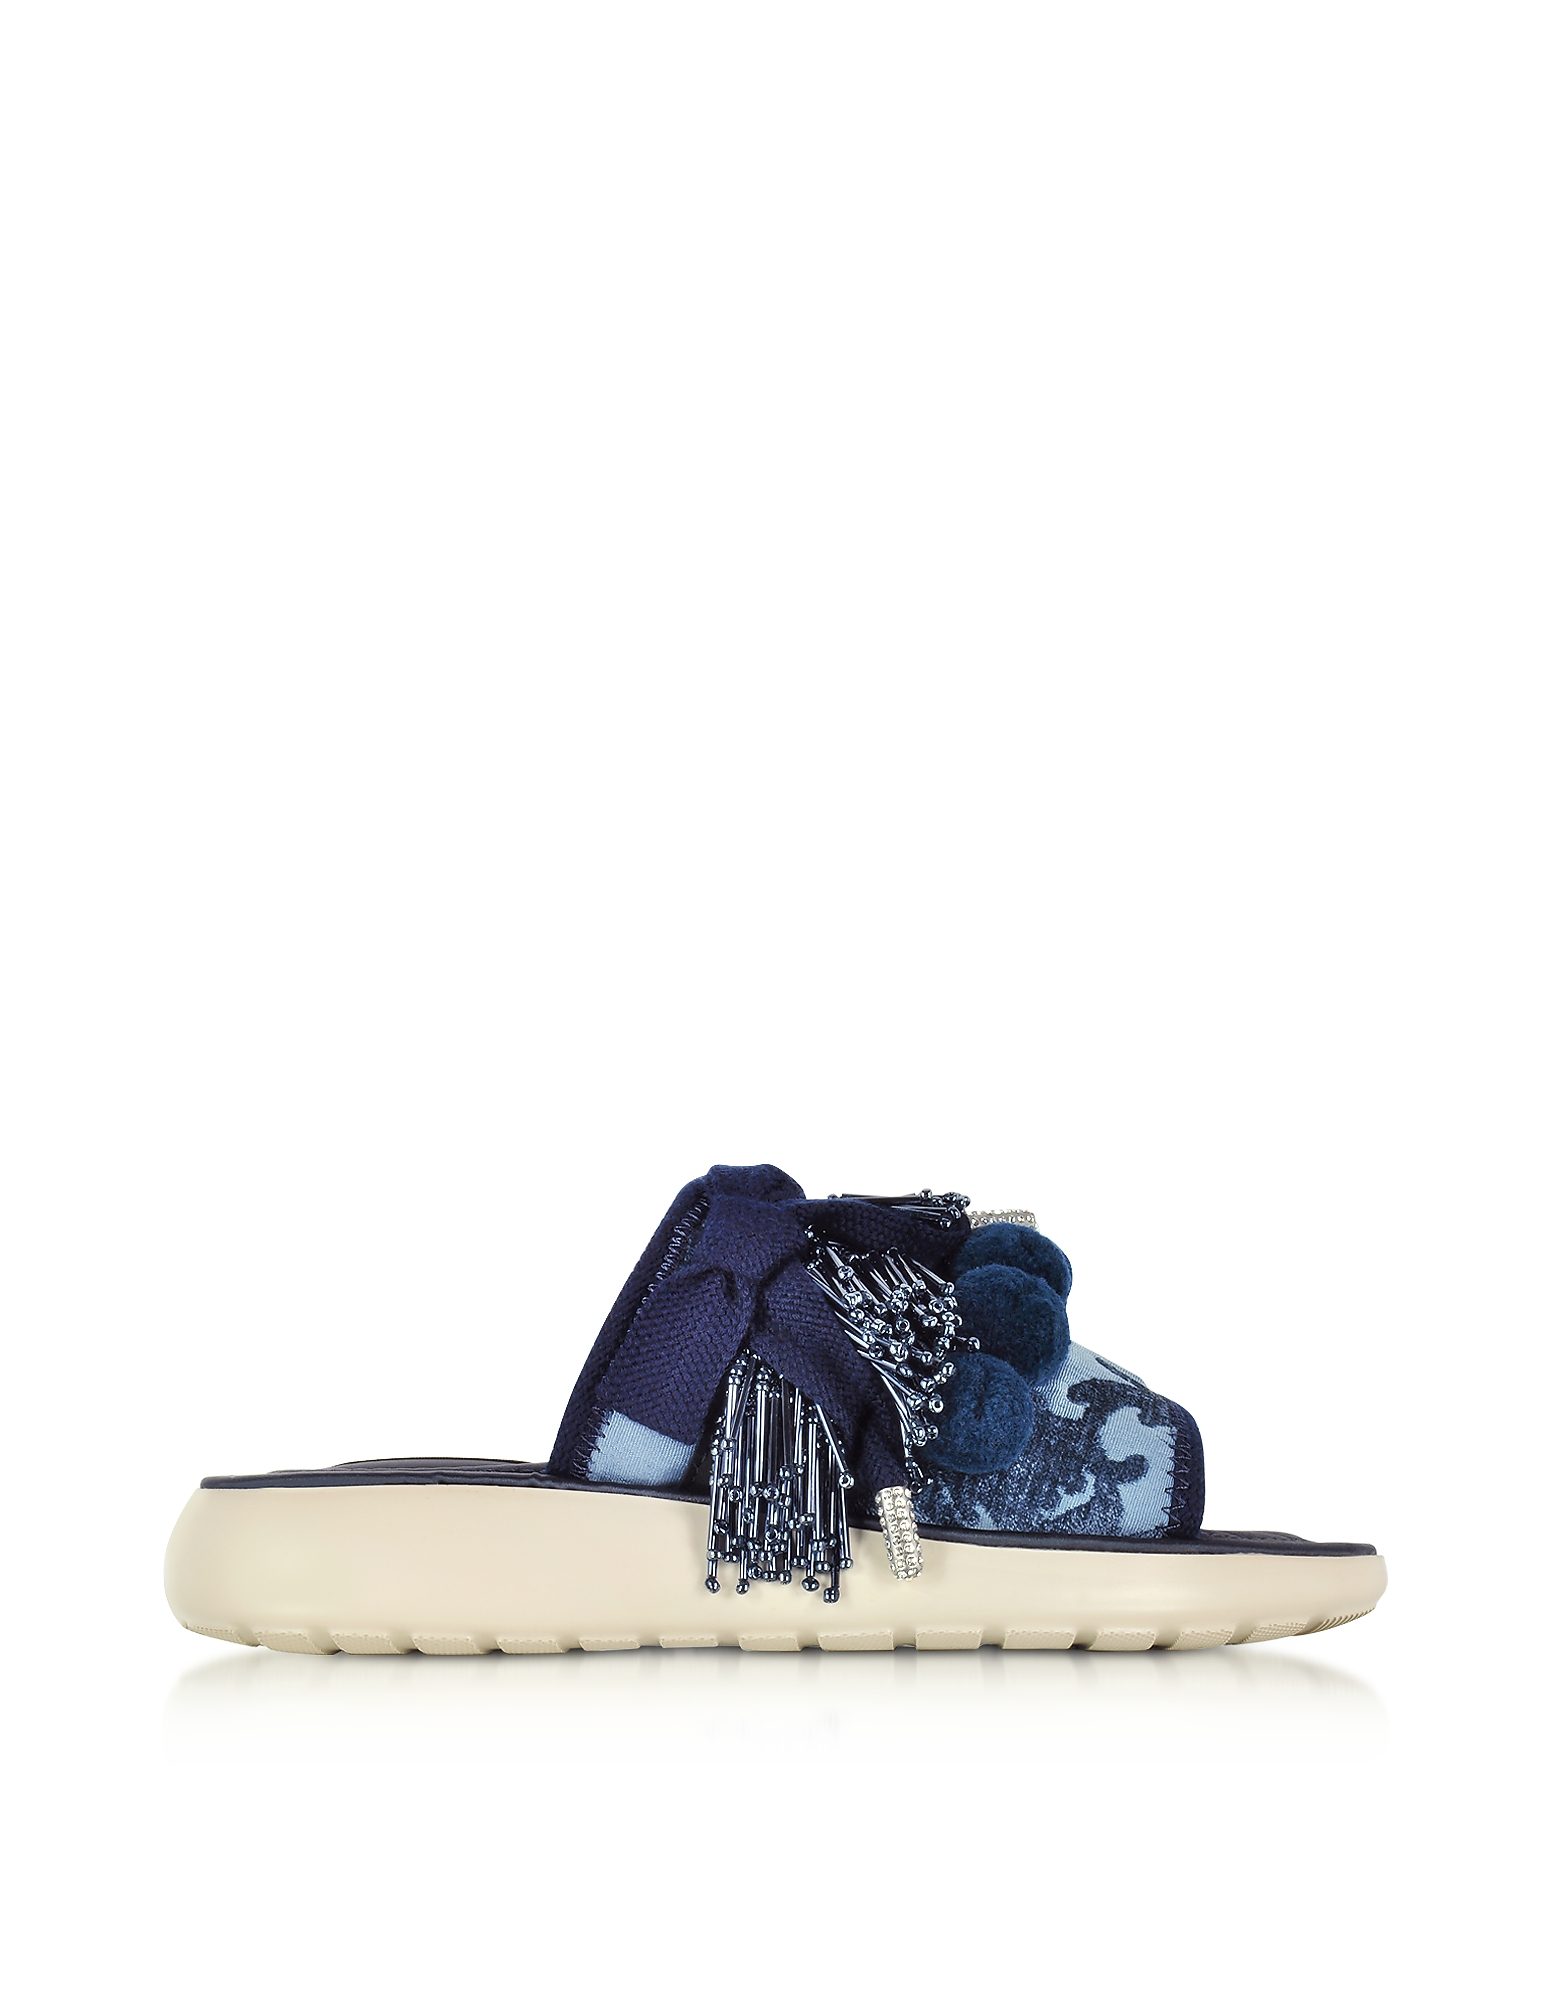 Marc Jacobs Shoes, Emerson Pompom Denim Sport Sandal